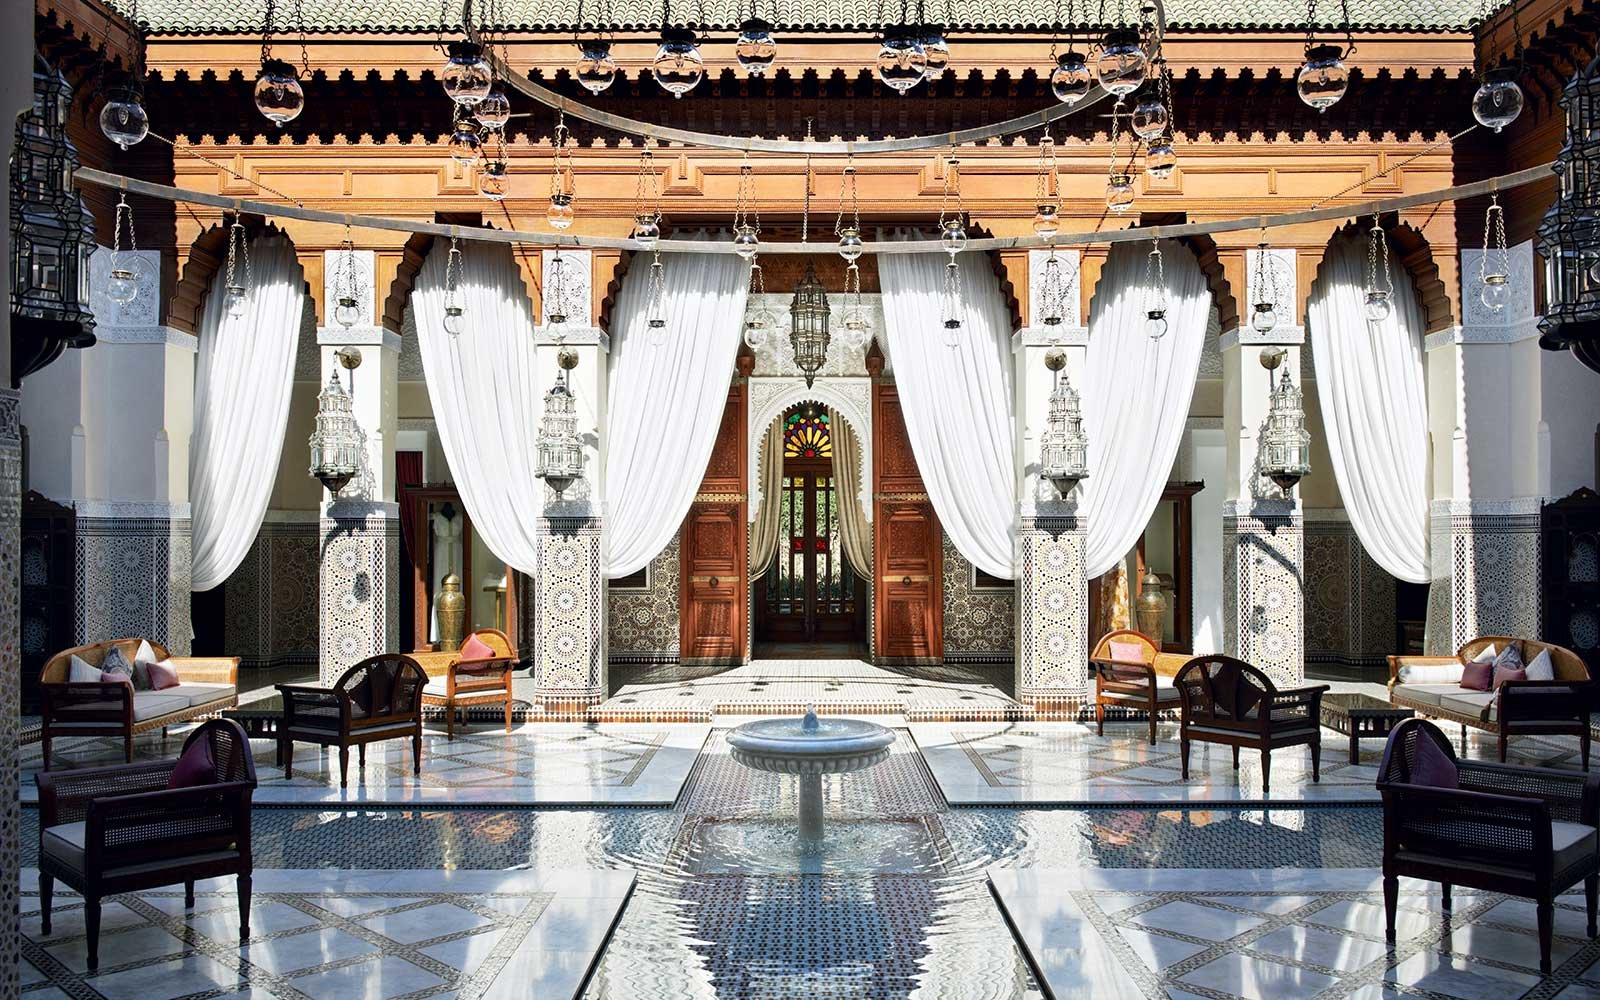 Royal Mansour Hotel in North Africa and Middle East